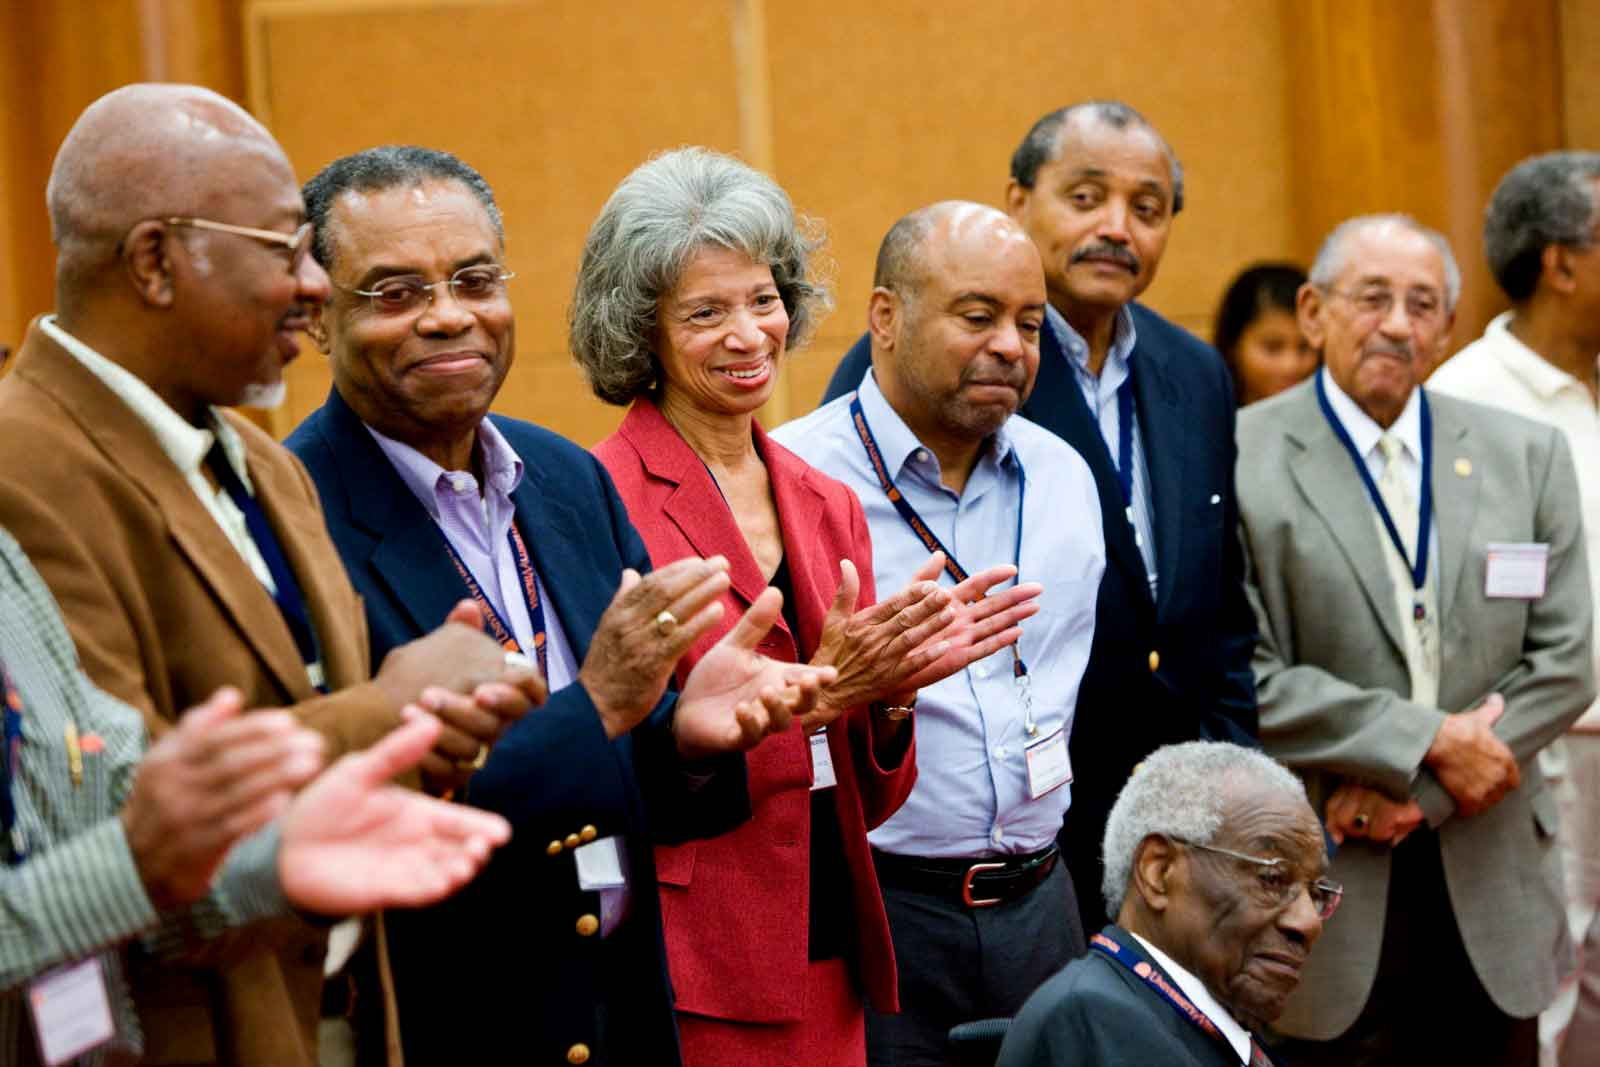 The Office of African-American Affairs helped plan an alumni reunion in 2009 for the earliest black students who attended in the 1950s and '60s.